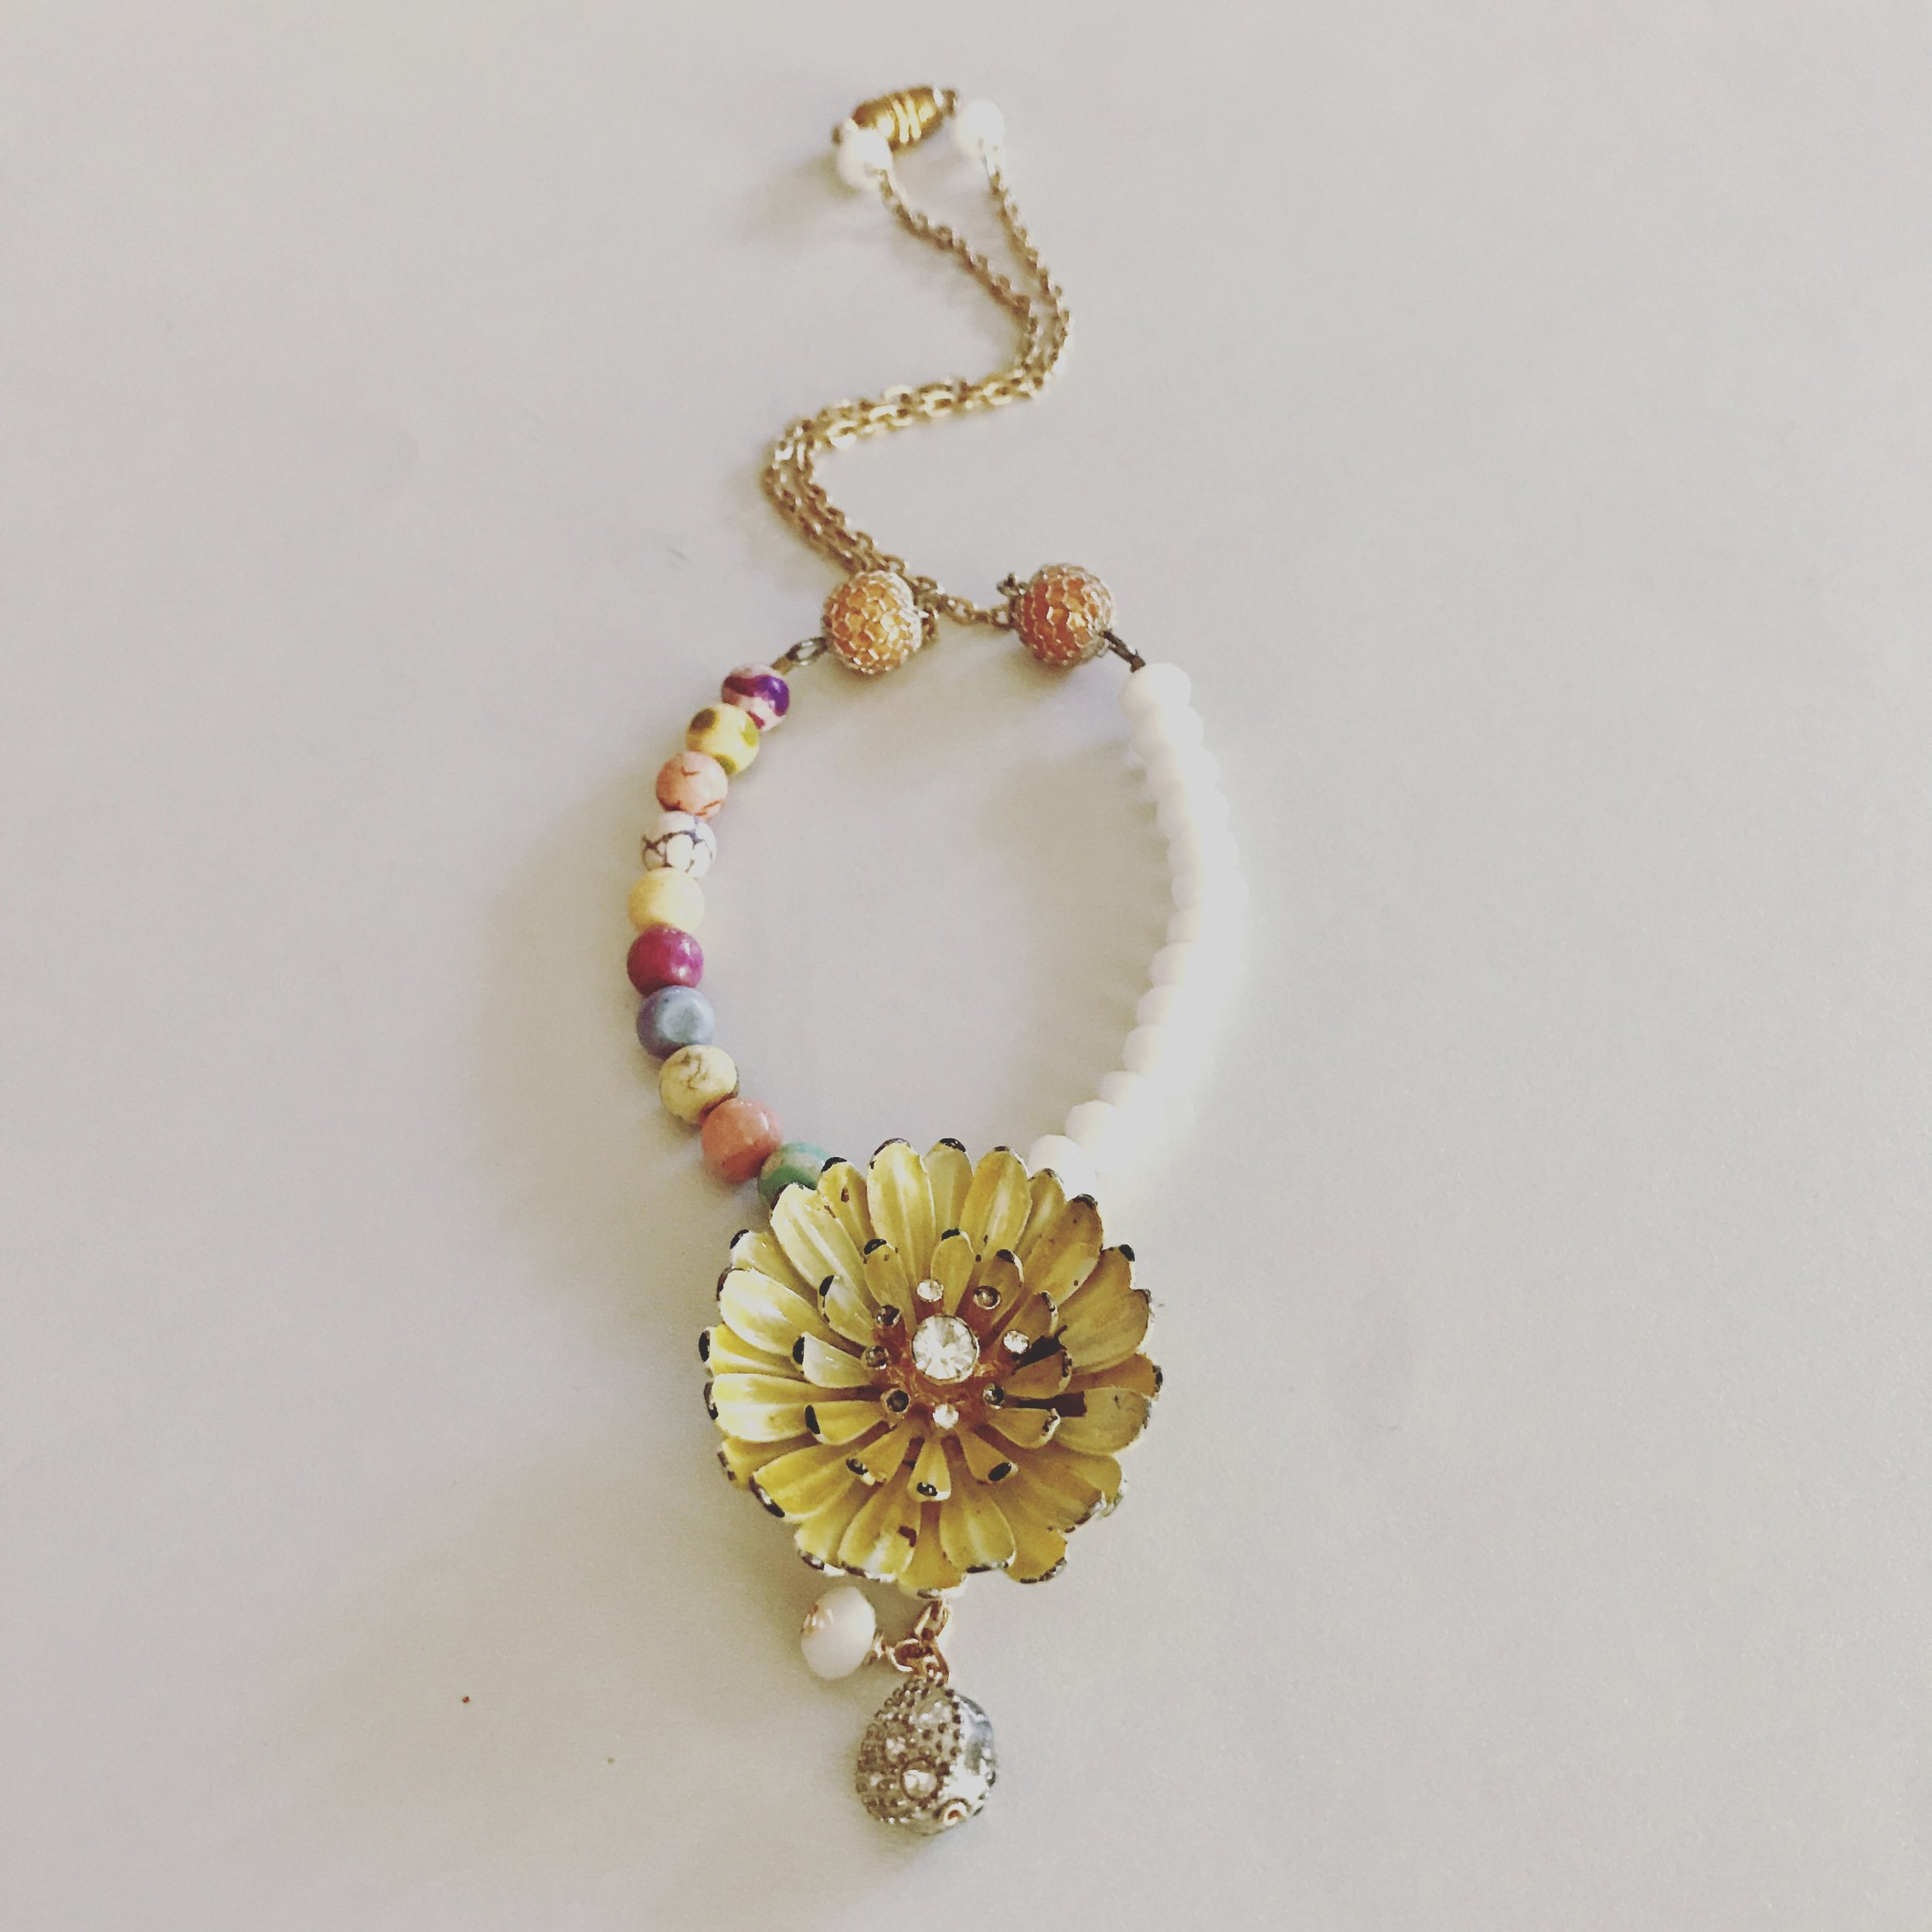 upcycled vintage jewelry:  1950s enamel flower pin + 1970s goldtone chain, adorned with modern beads and clasp